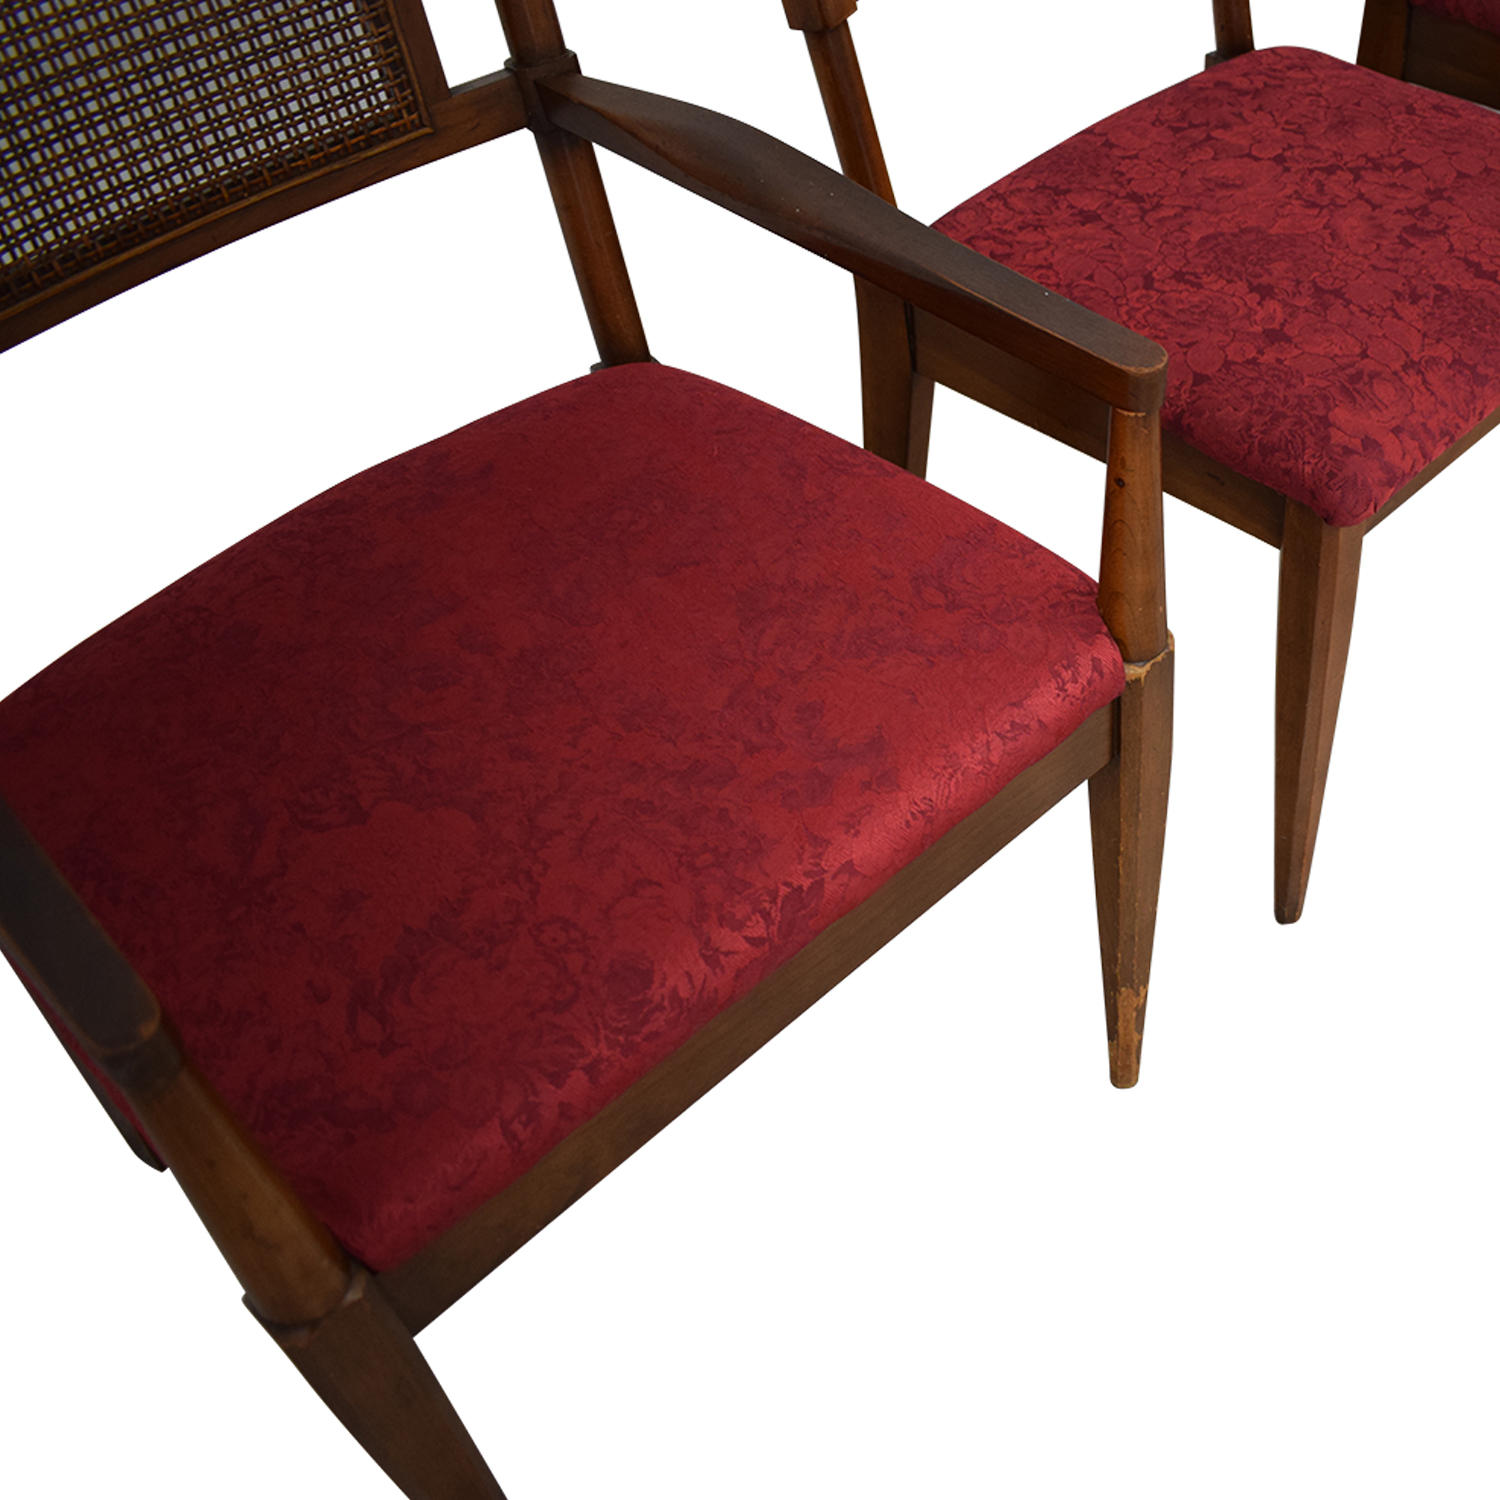 buy R & E Gordon Furniture Co. R & E Gordon Furniture Co. Dining Chairs online